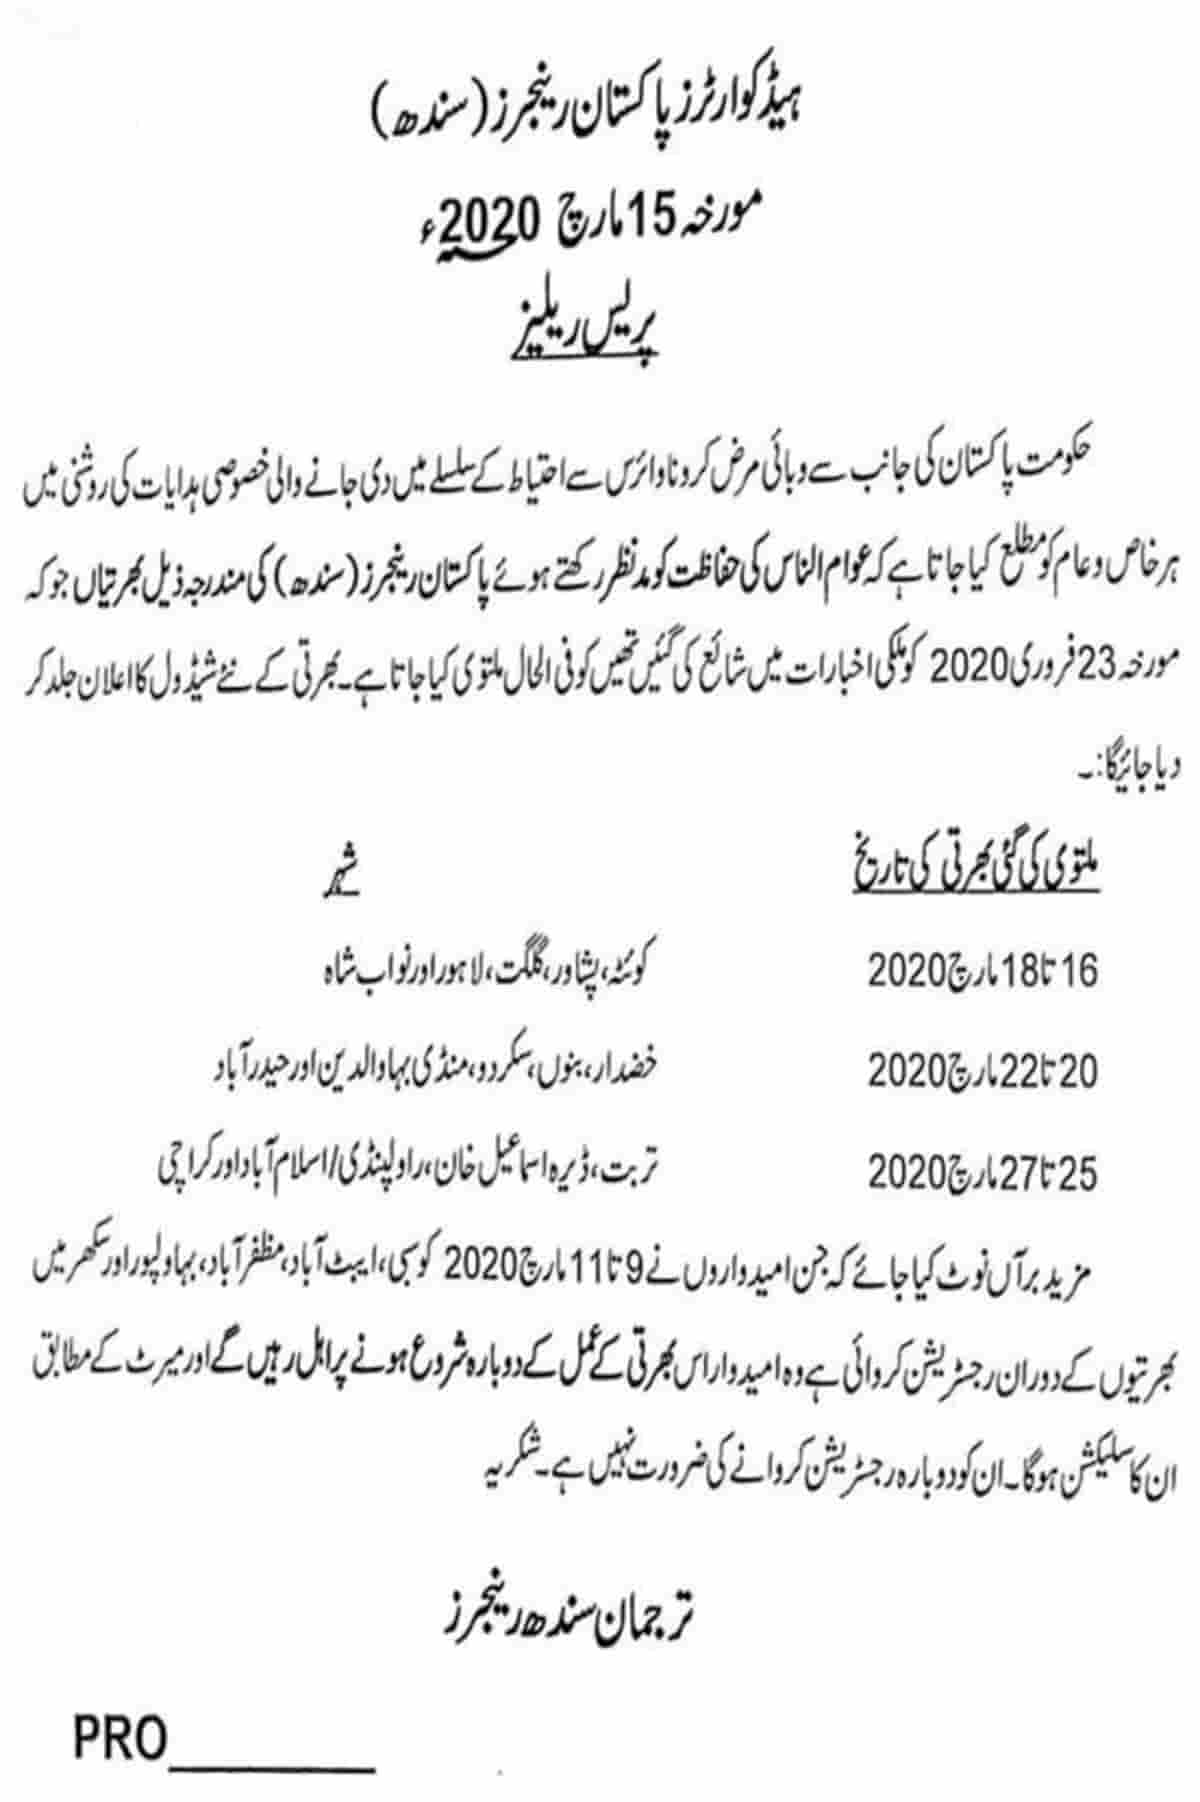 Pakistan Rangers Sindh Jobs 2020 Postponed Latest Notification